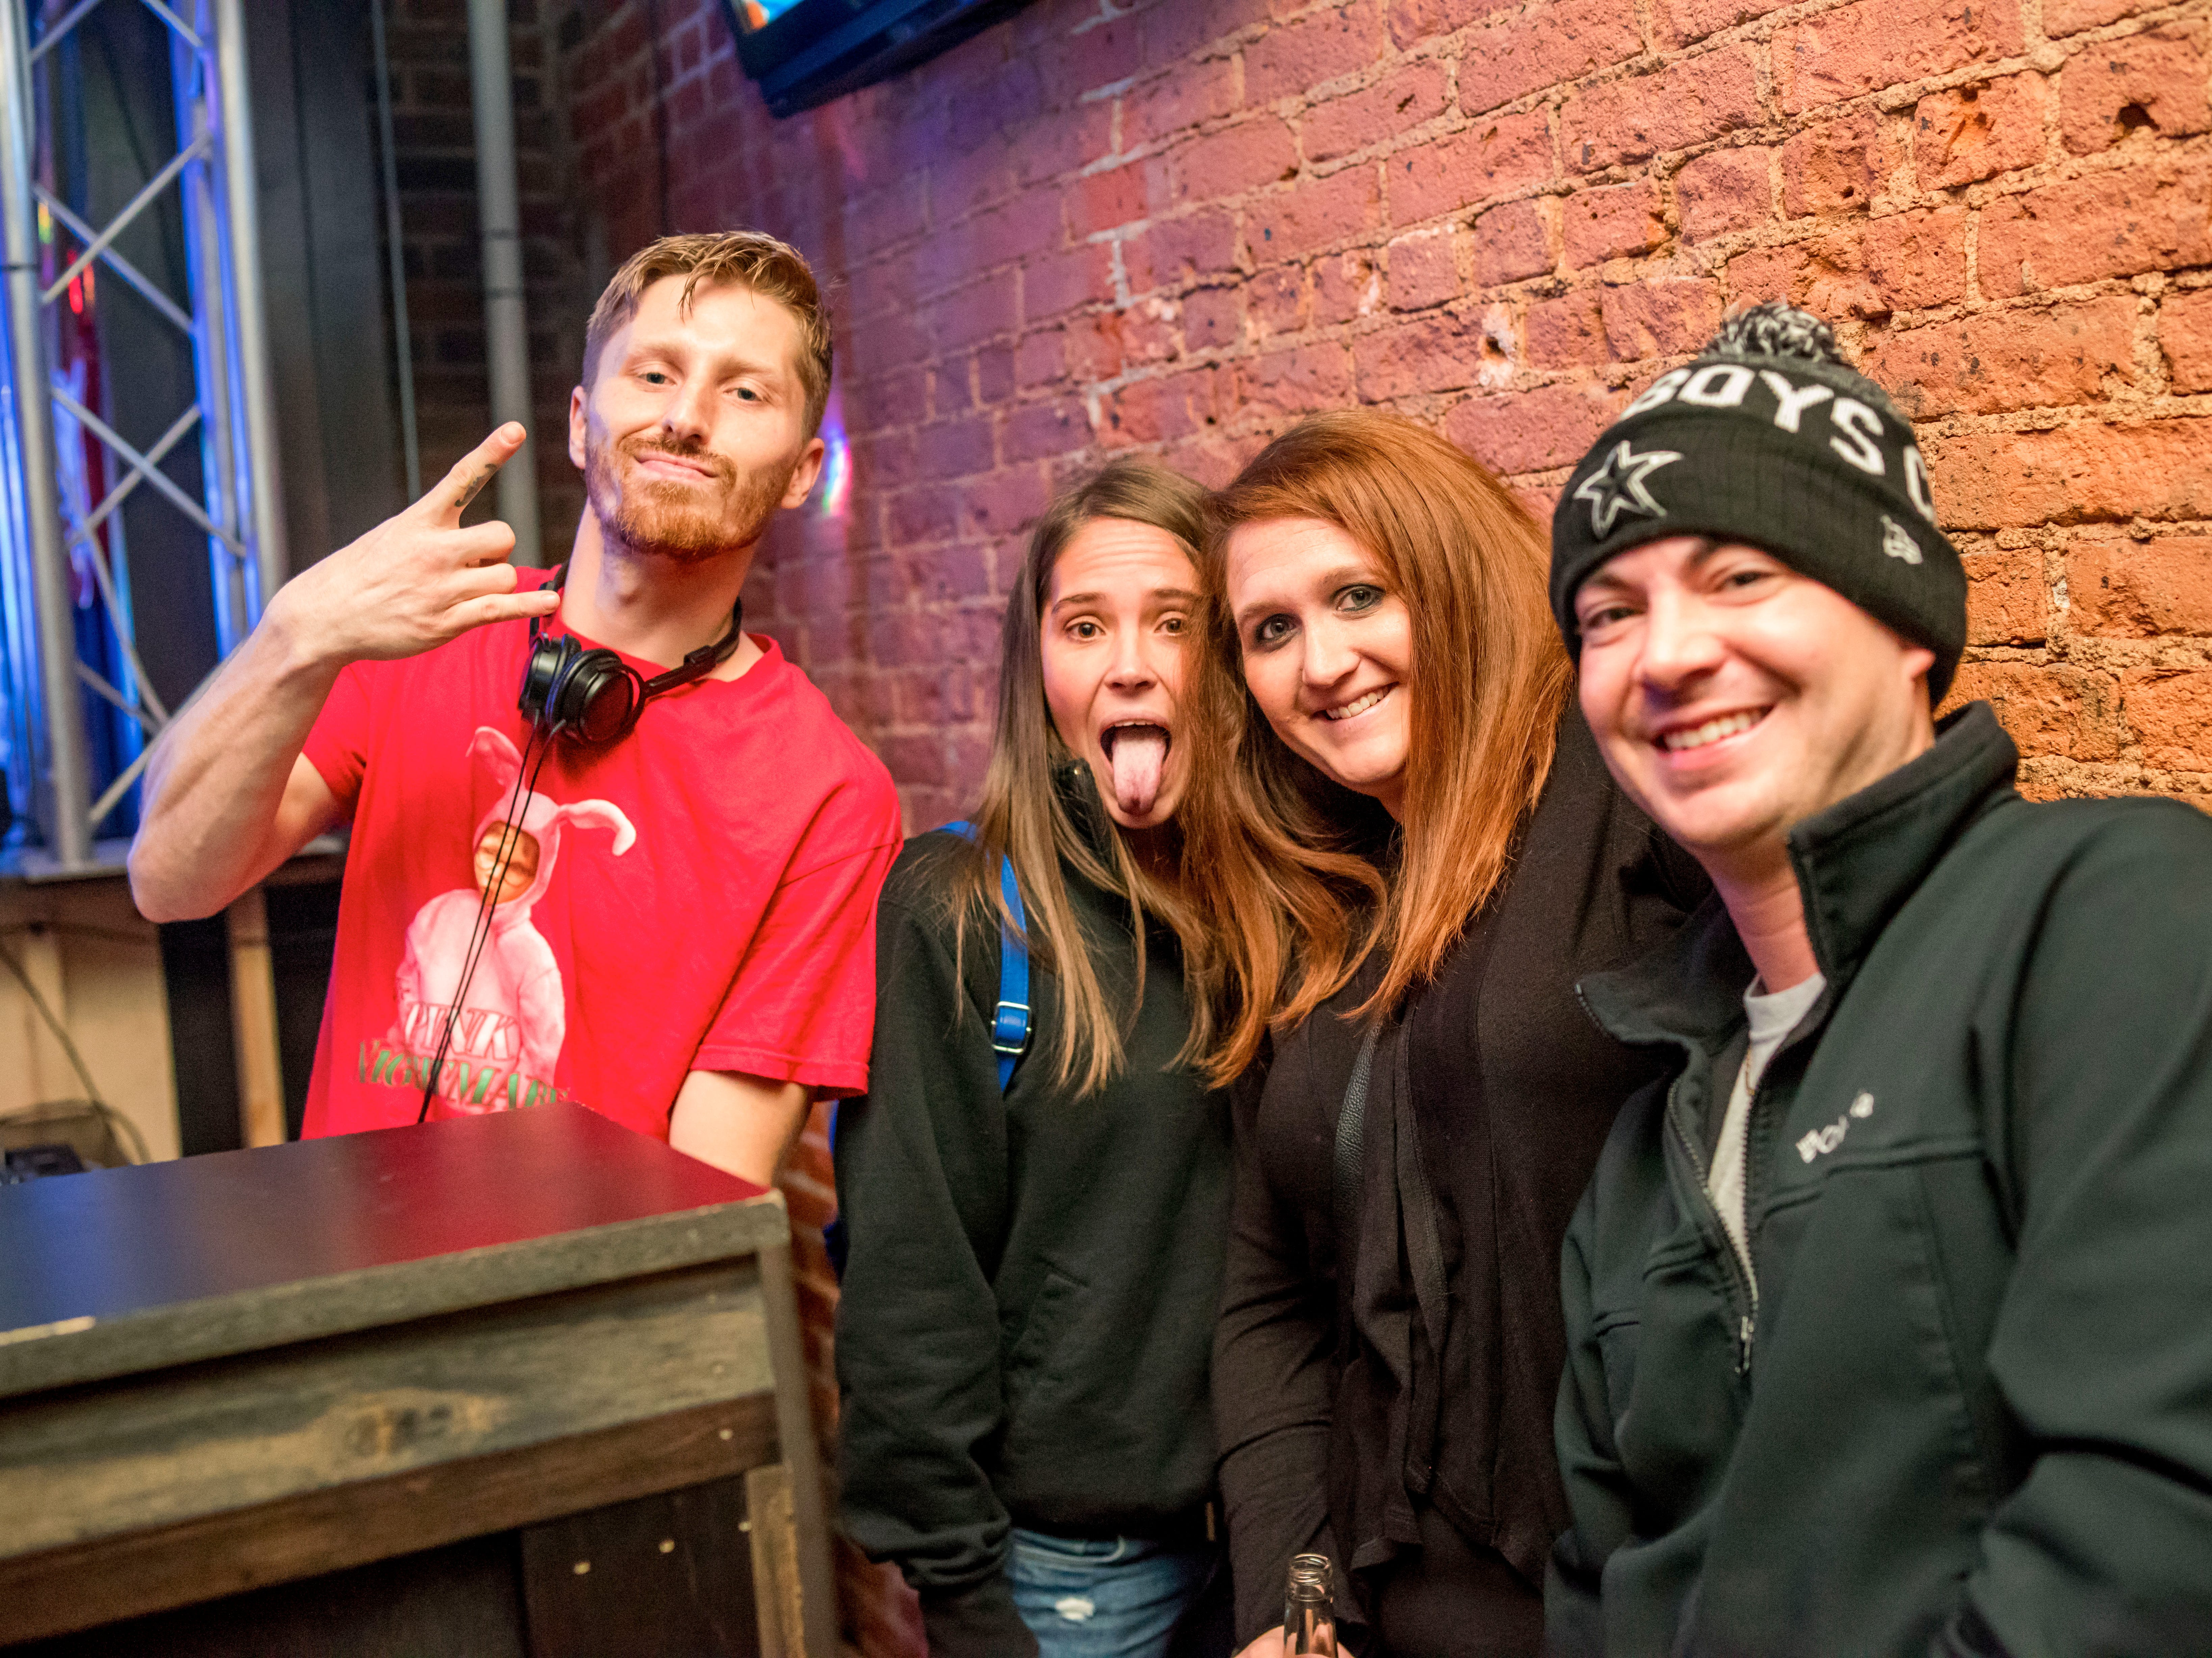 Josh Maganam, 28, Jessica Stevens, 31, Jessica Meeks, 29, and Kyle Hutchins, 29, all of Des Moines, having a great night, Friday, Dec. 14 at The District.